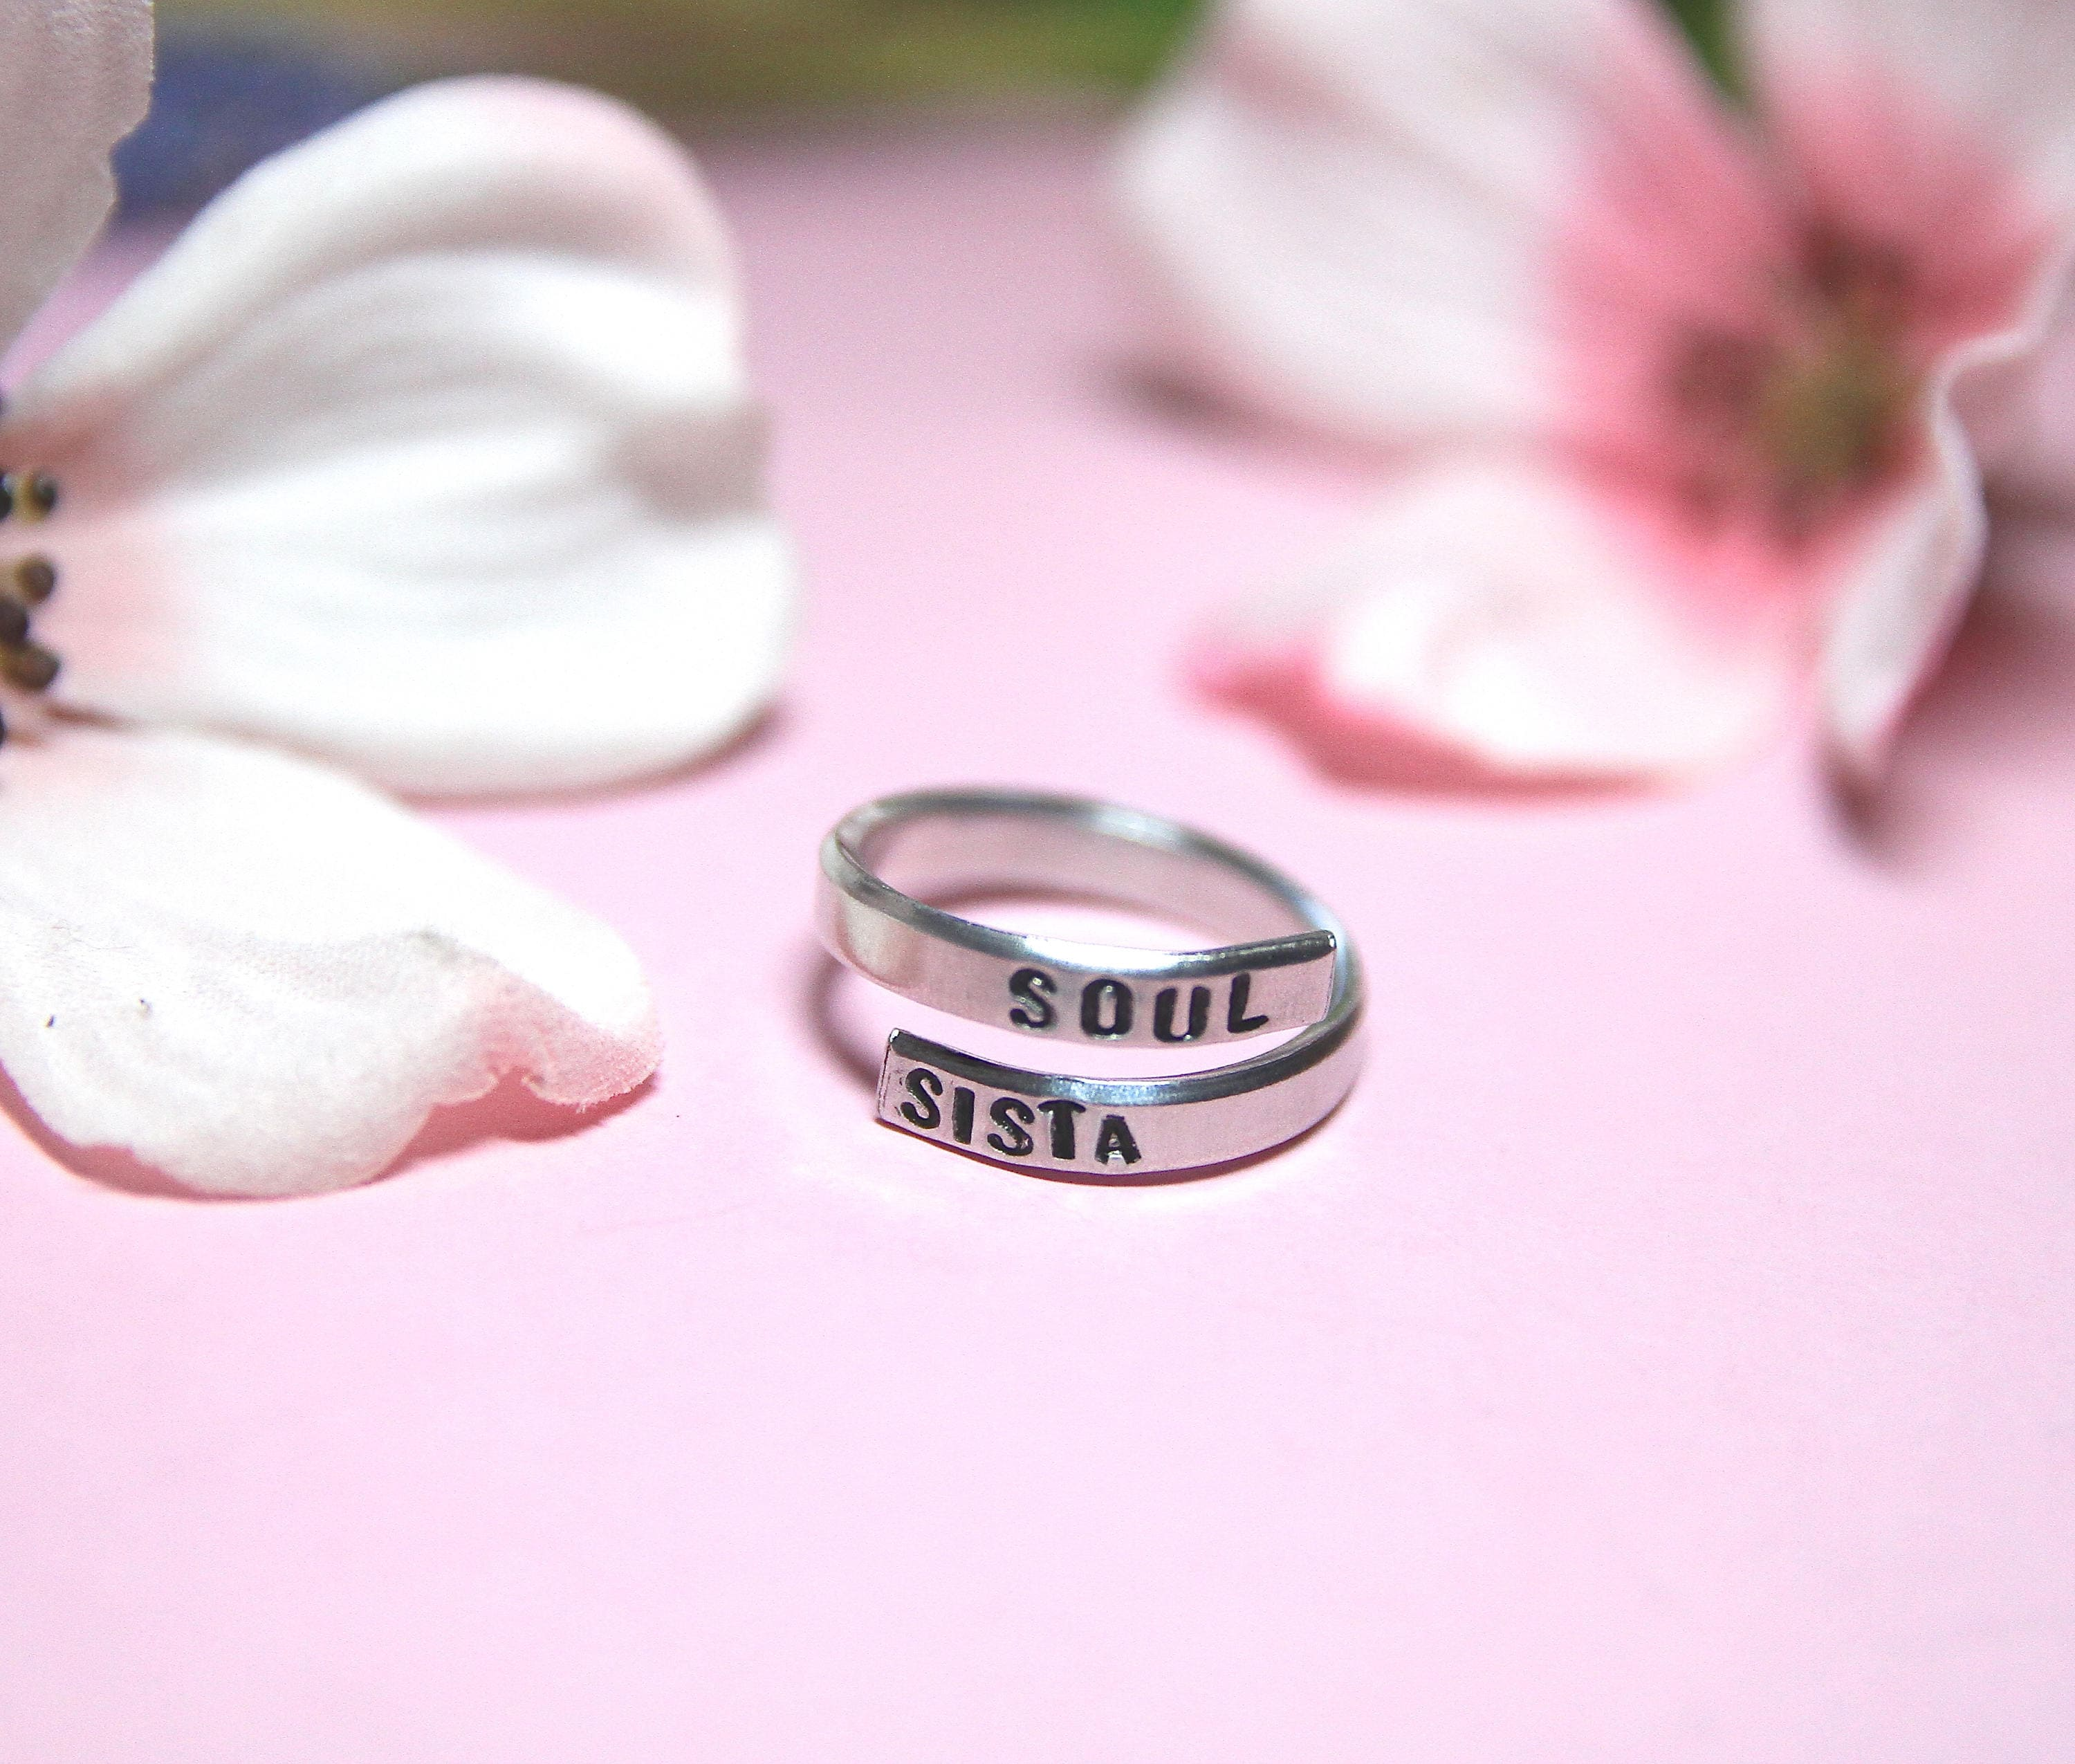 Soul Sista Ring | Soul Sister | Bestfriend | Long Distance Friend ...